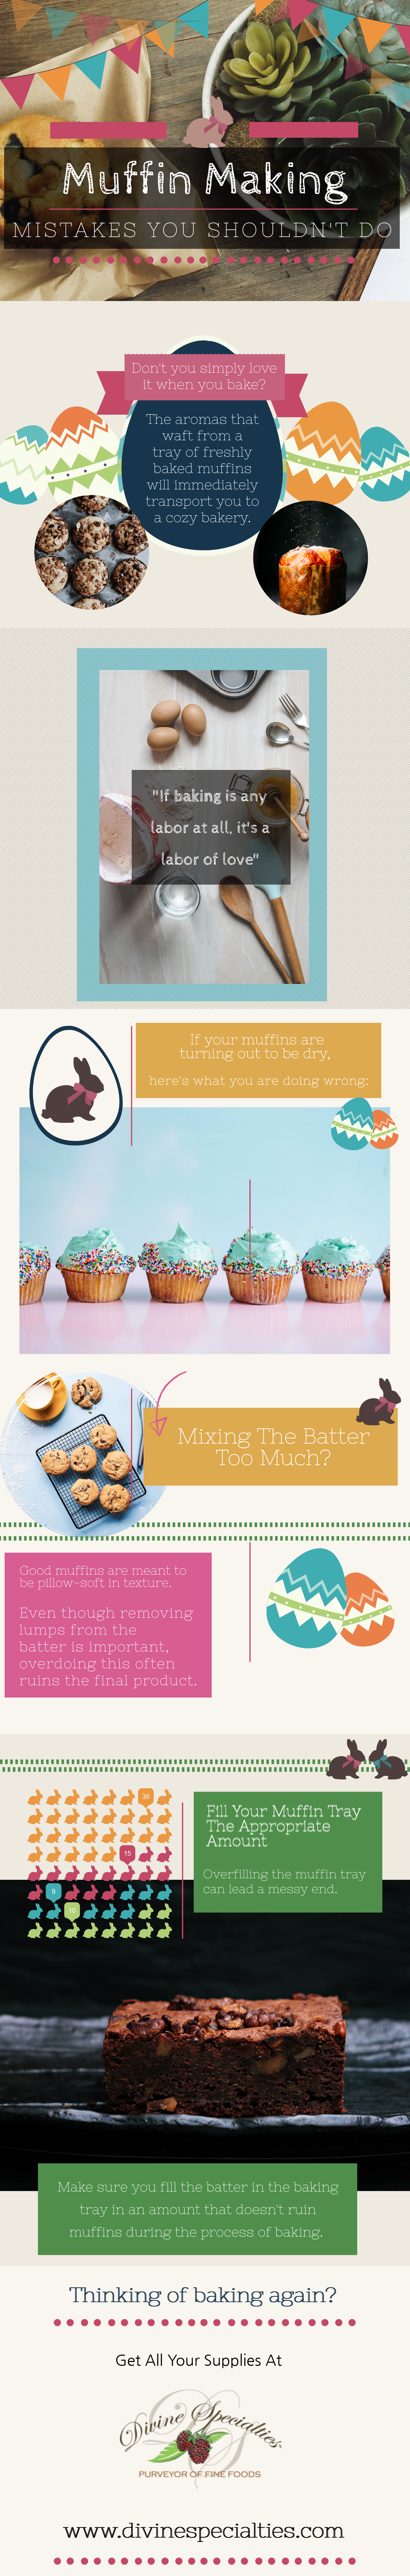 Muffin Making Mistakes You Shouldn 039 T Do - Infographic